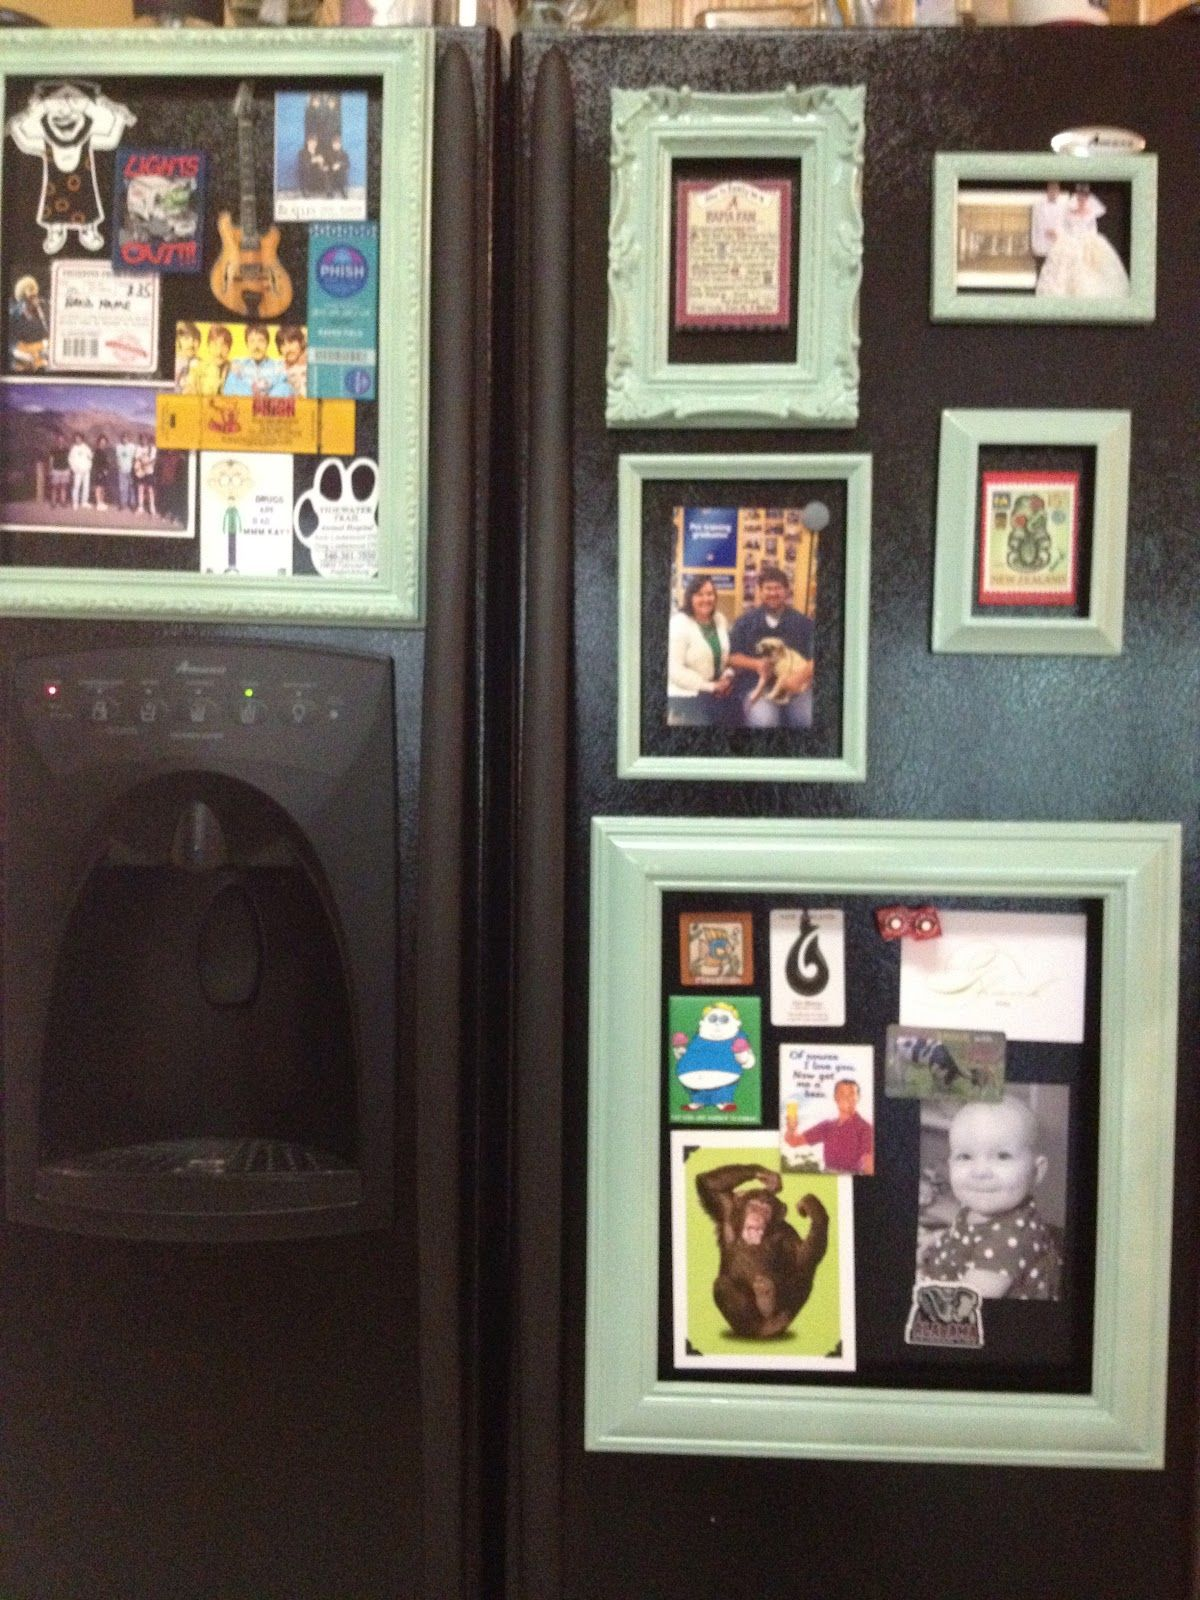 This DIY Magnetic Fridge Gallery will turn your kitchen into the Louvre. This would look neater than scattered objects.